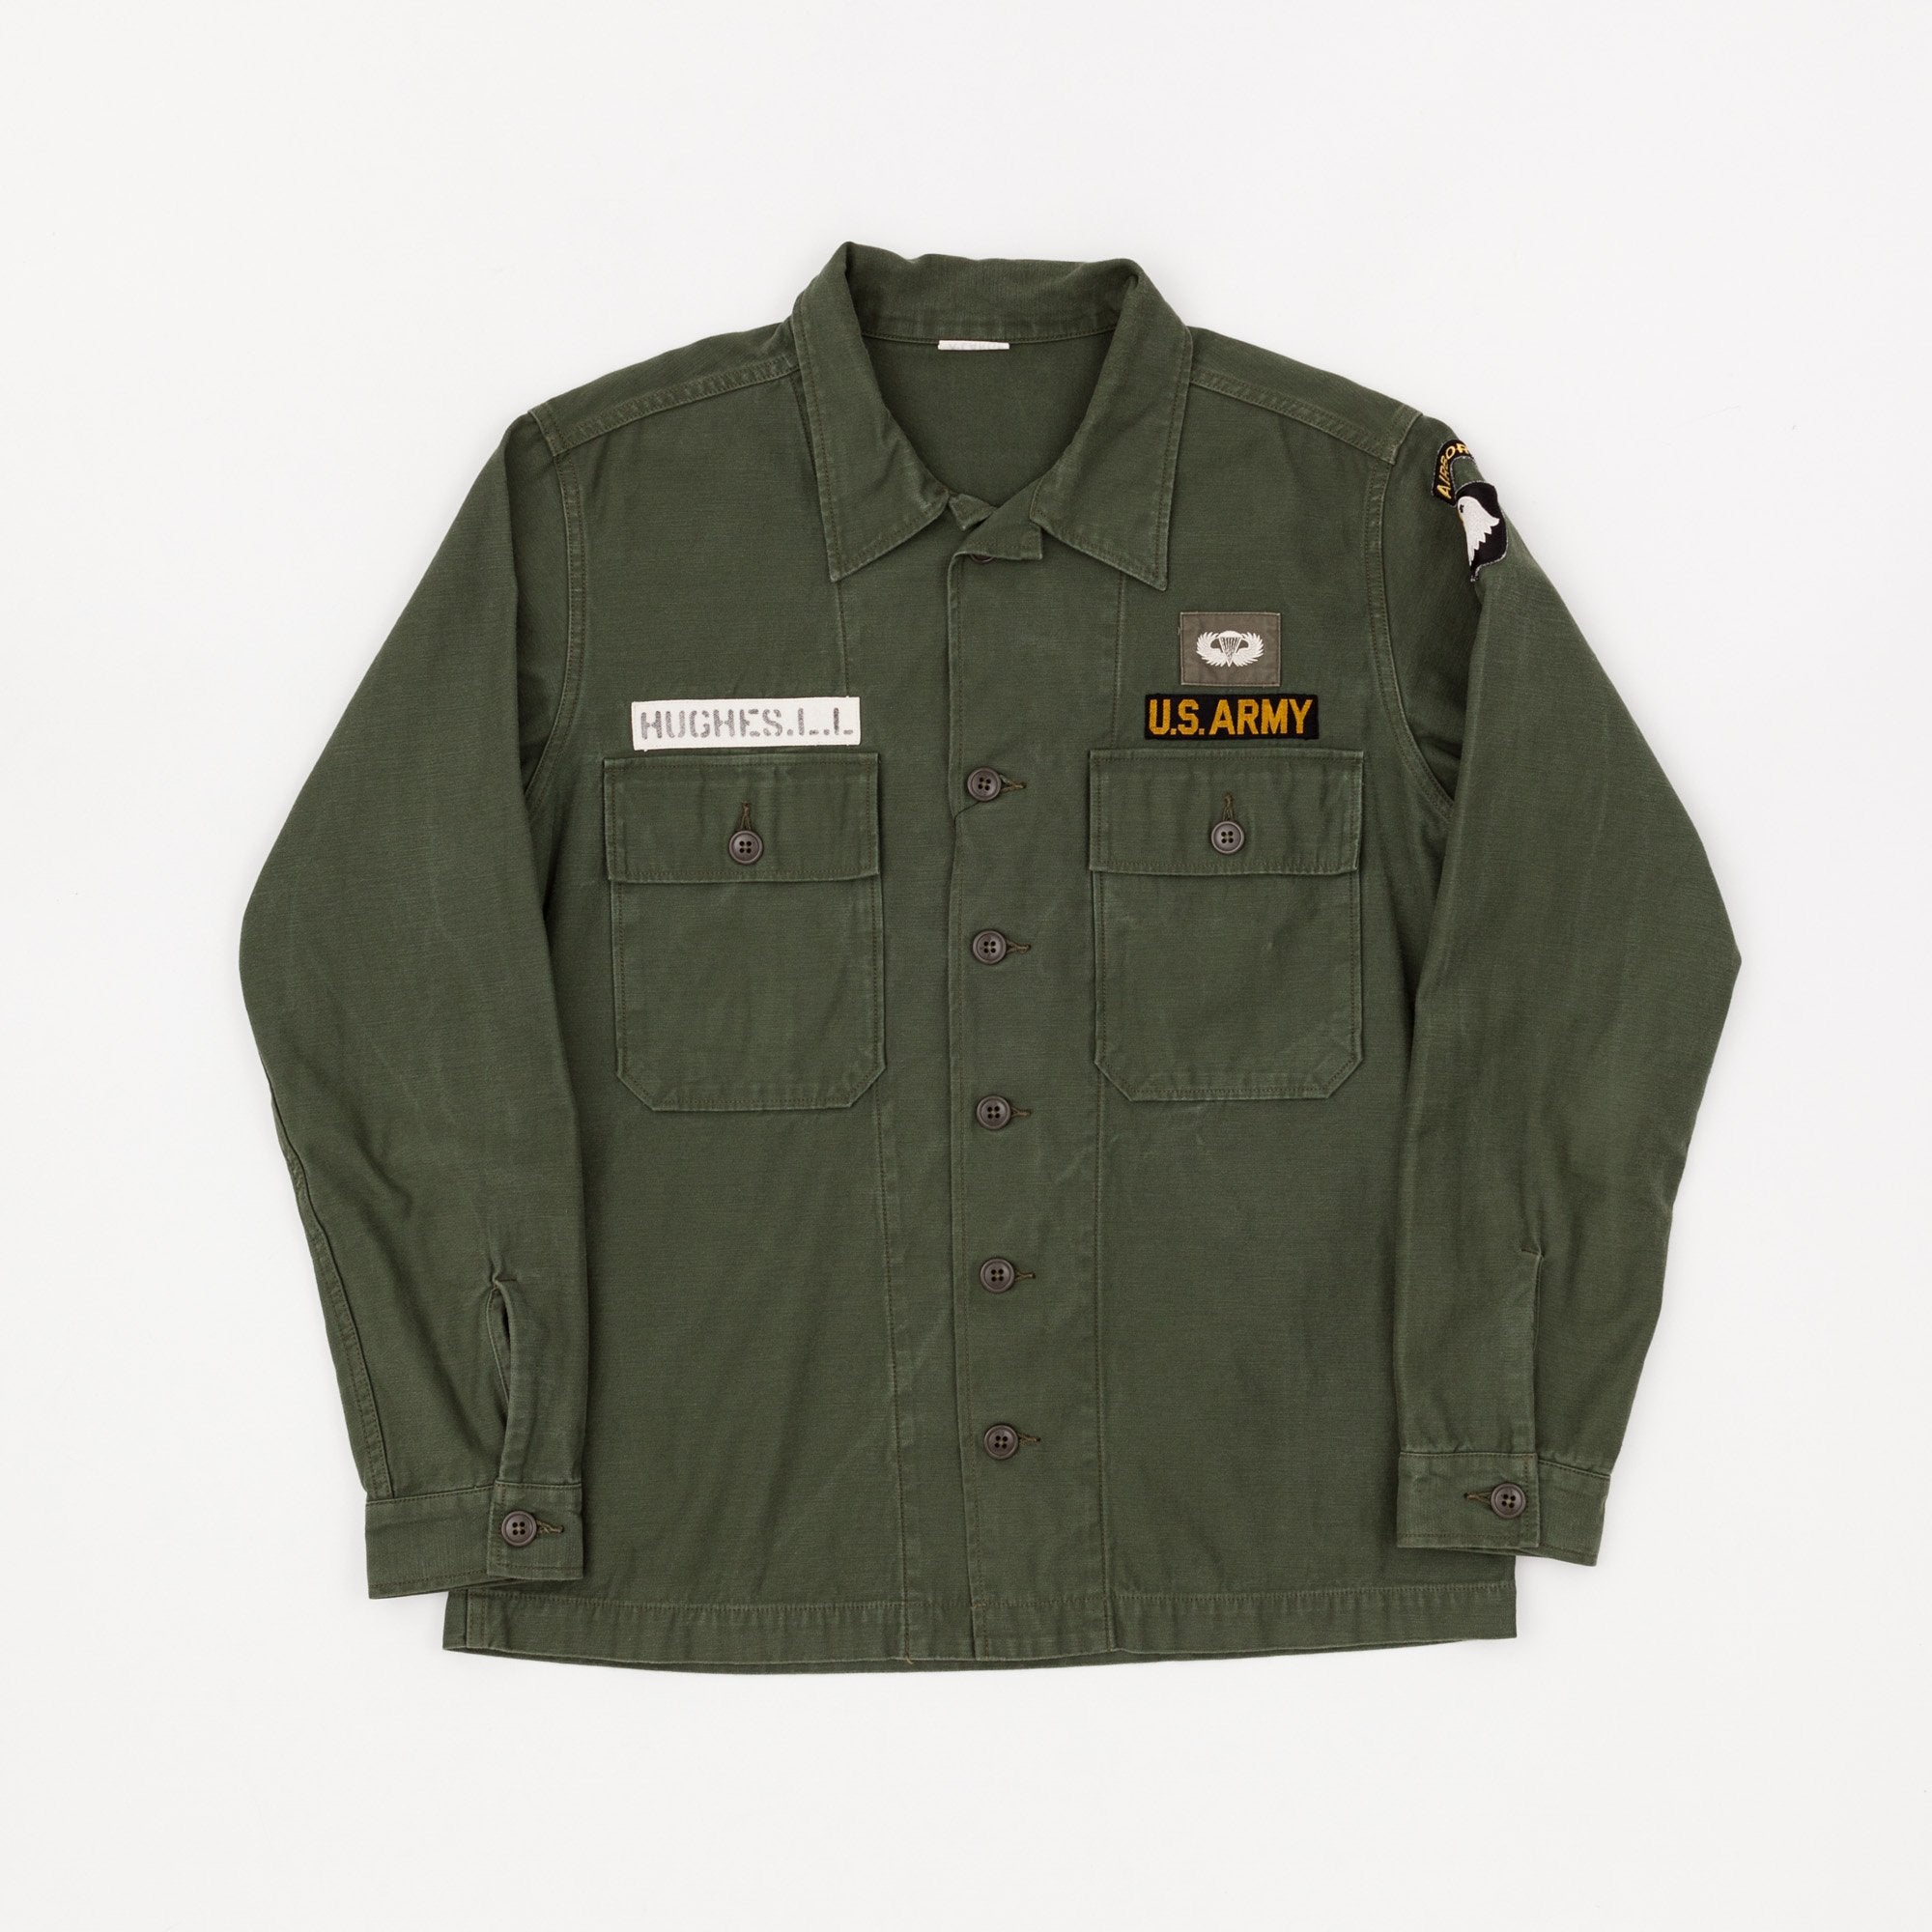 The Real McCoy's U.S Army Sateen Utility Shirt